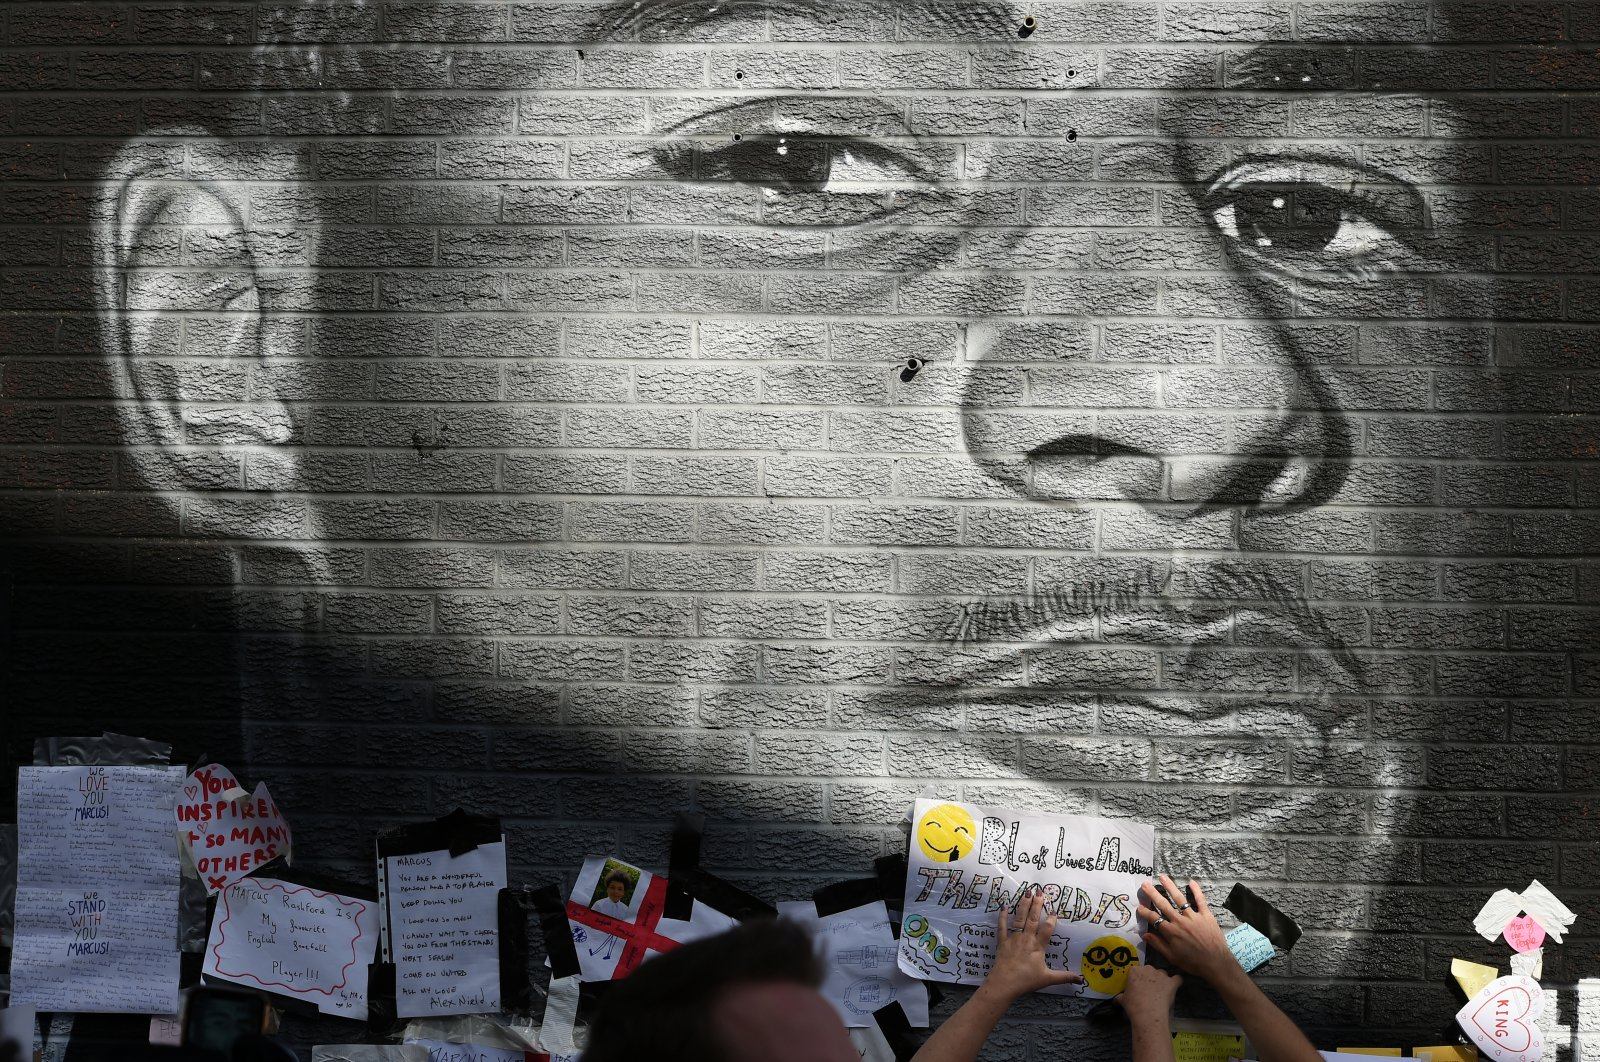 FILE PHOTO: Stand Up to Racism Demonstration at the Marcus Rashford mural after it was defaced following the Euro 2020 Final between Italy and England - Withington, Manchester, Britain - July 13, 2021 People attach a message of support on the Marcus Rashford mural after it was defaced following the Euro 2020 Final between Italy and England REUTERS/Peter Powell/File Photo